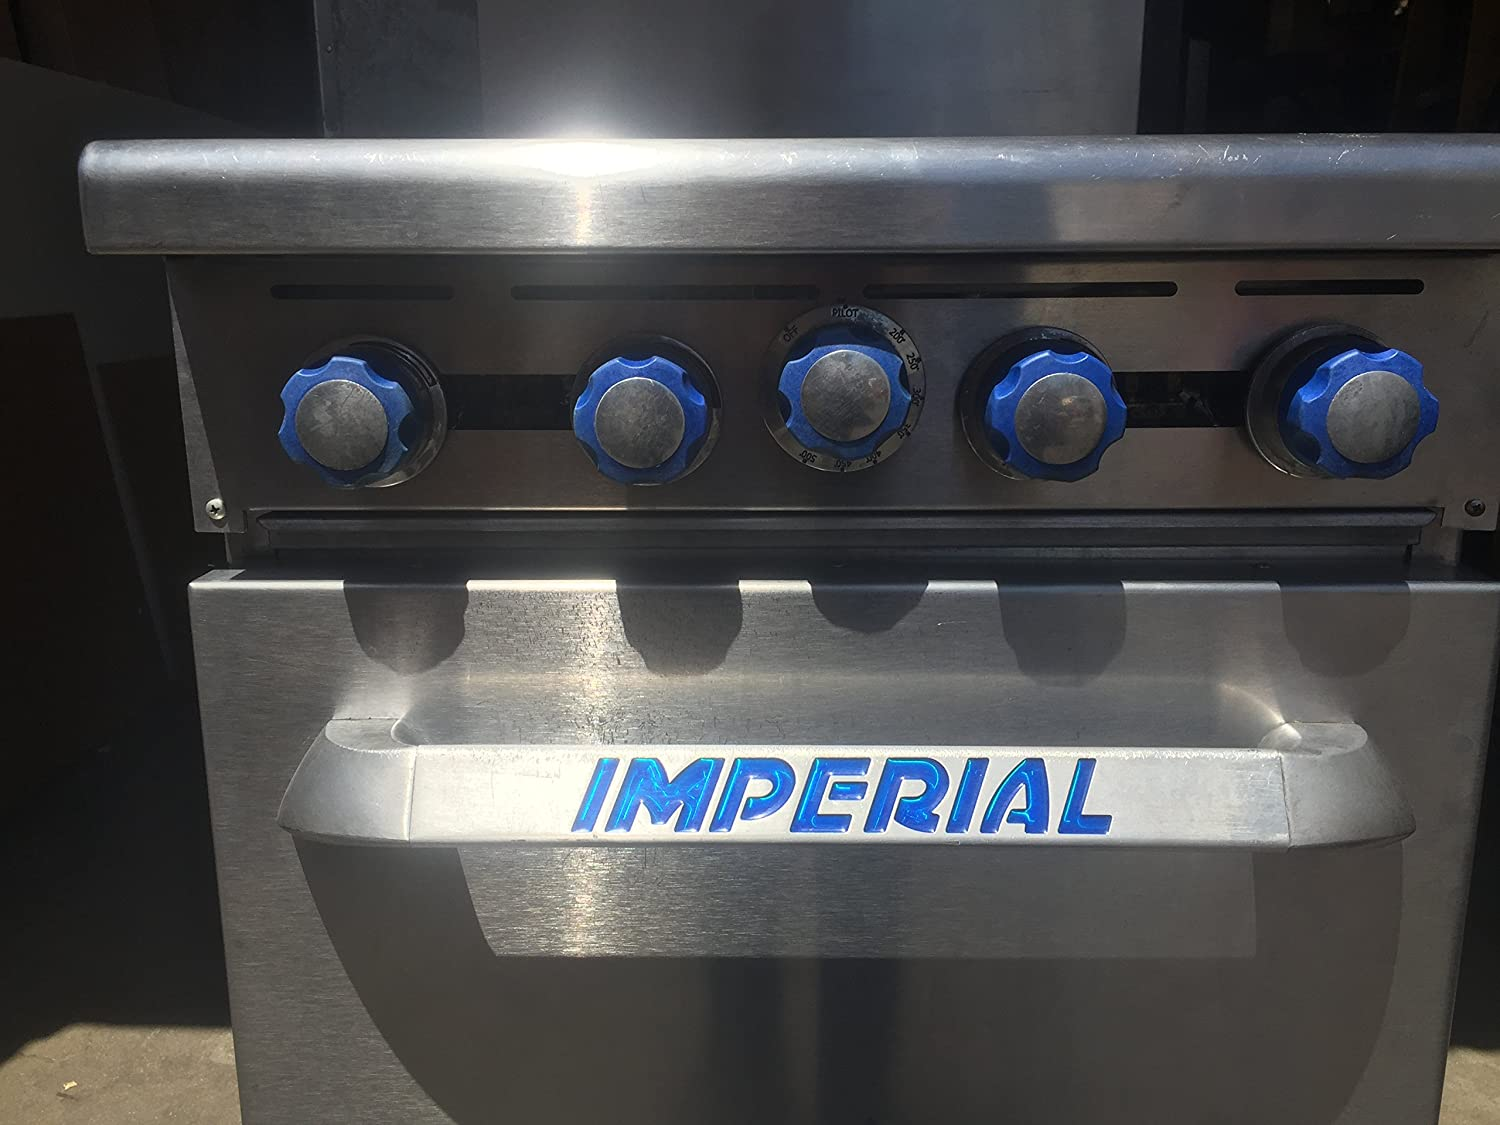 Imperial Commercial Restaurant Range 24 With 4 Burners//Standard Oven Natural Gas Model Ir-4